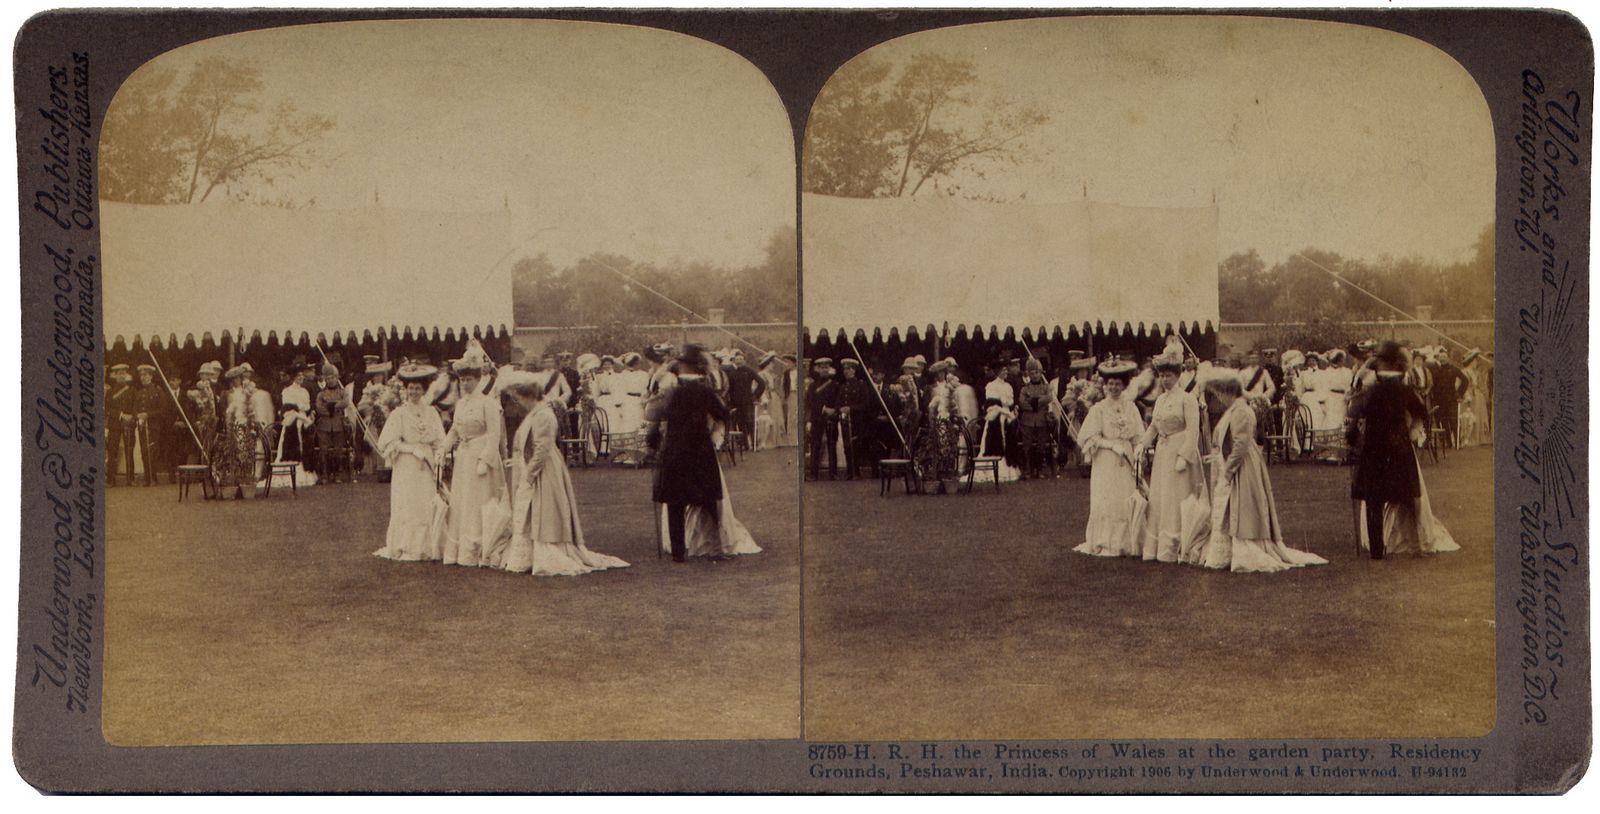 The Princess of Wales at the garden party. Residency Grounds, Peshawar, Modern Pakistan